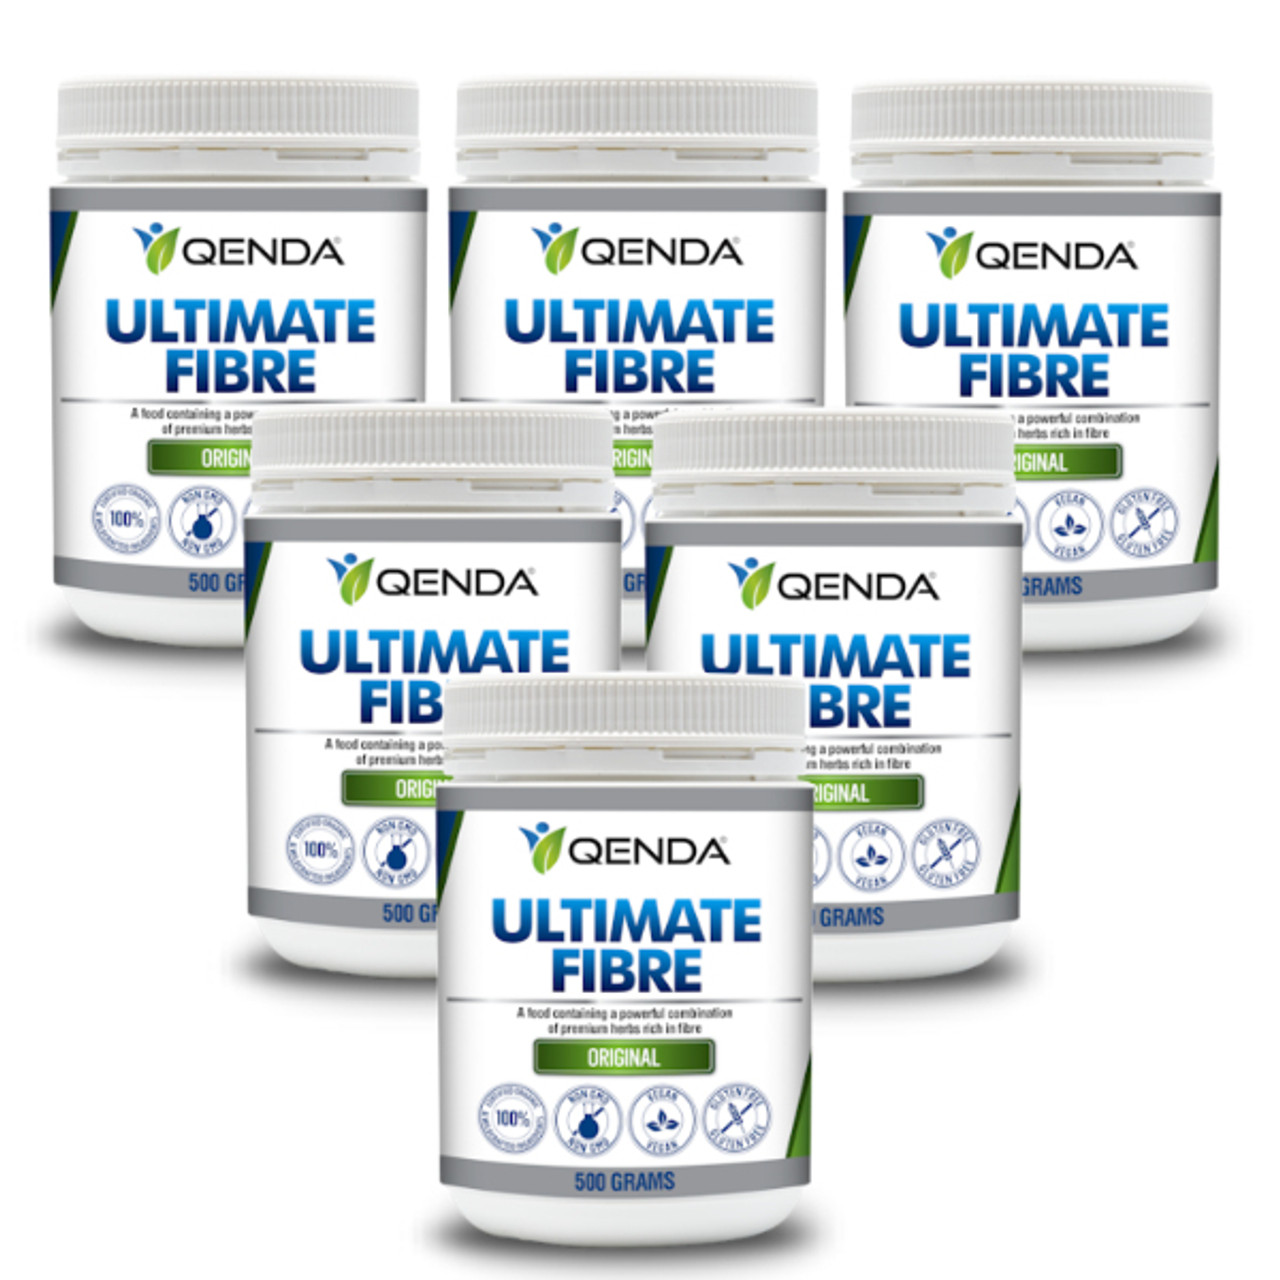 6 Pack - Qenda Ultimate Fibre - 10% Discount